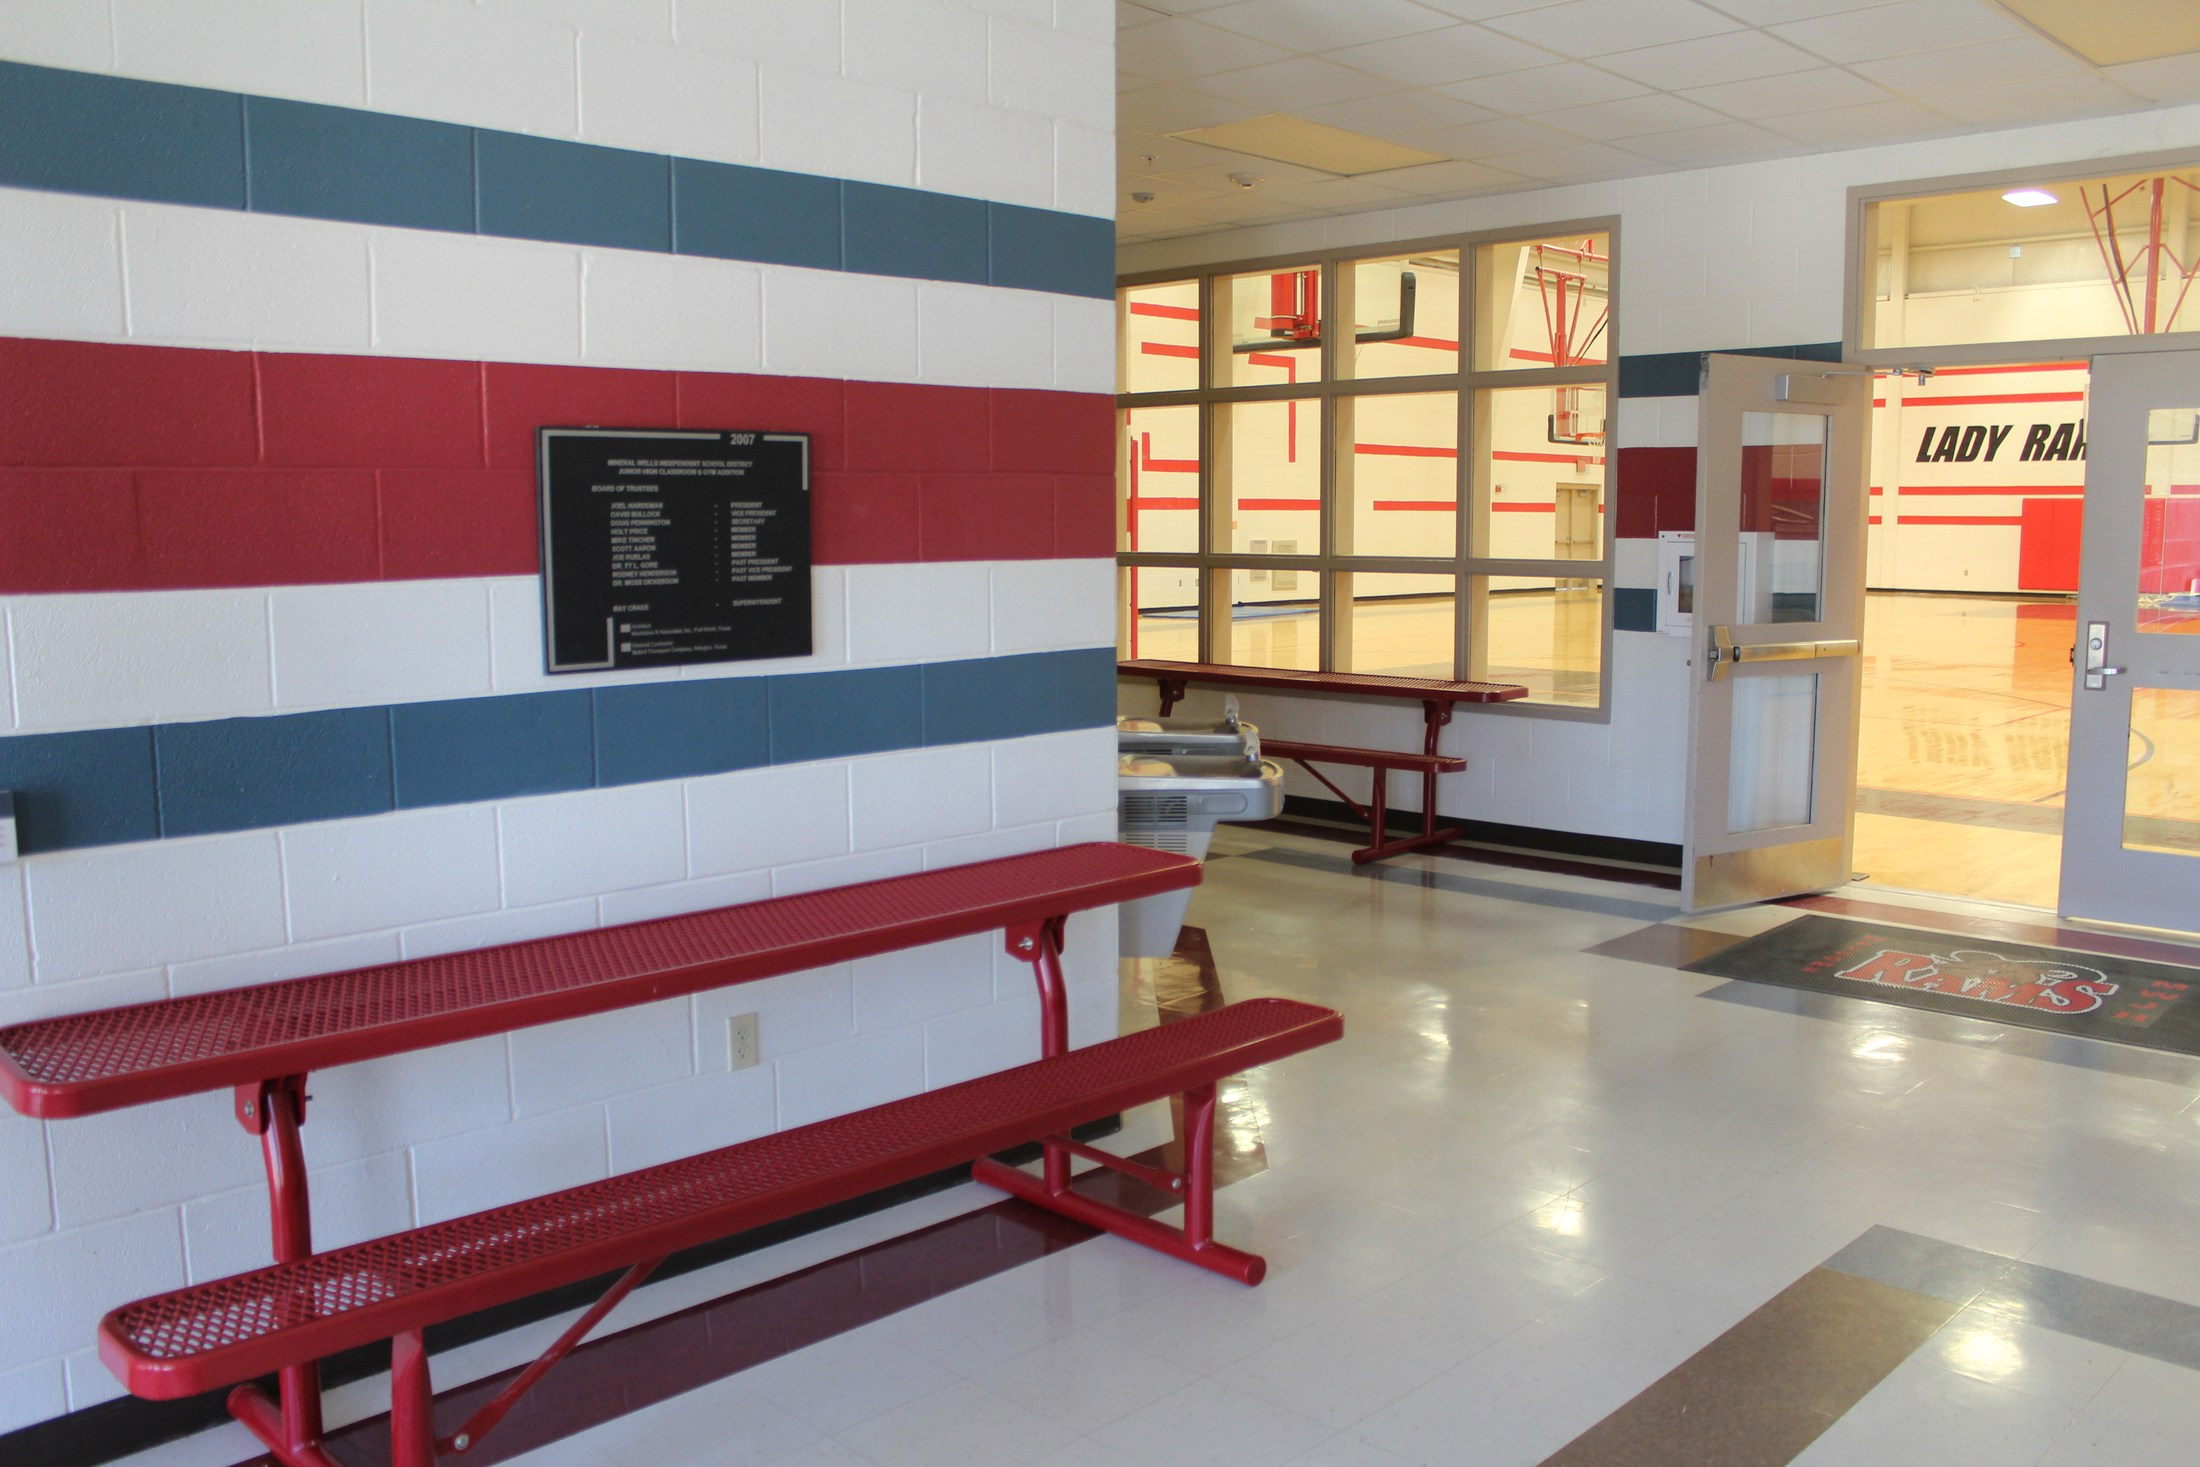 Vestibule/Dining area at Jr High New Gym